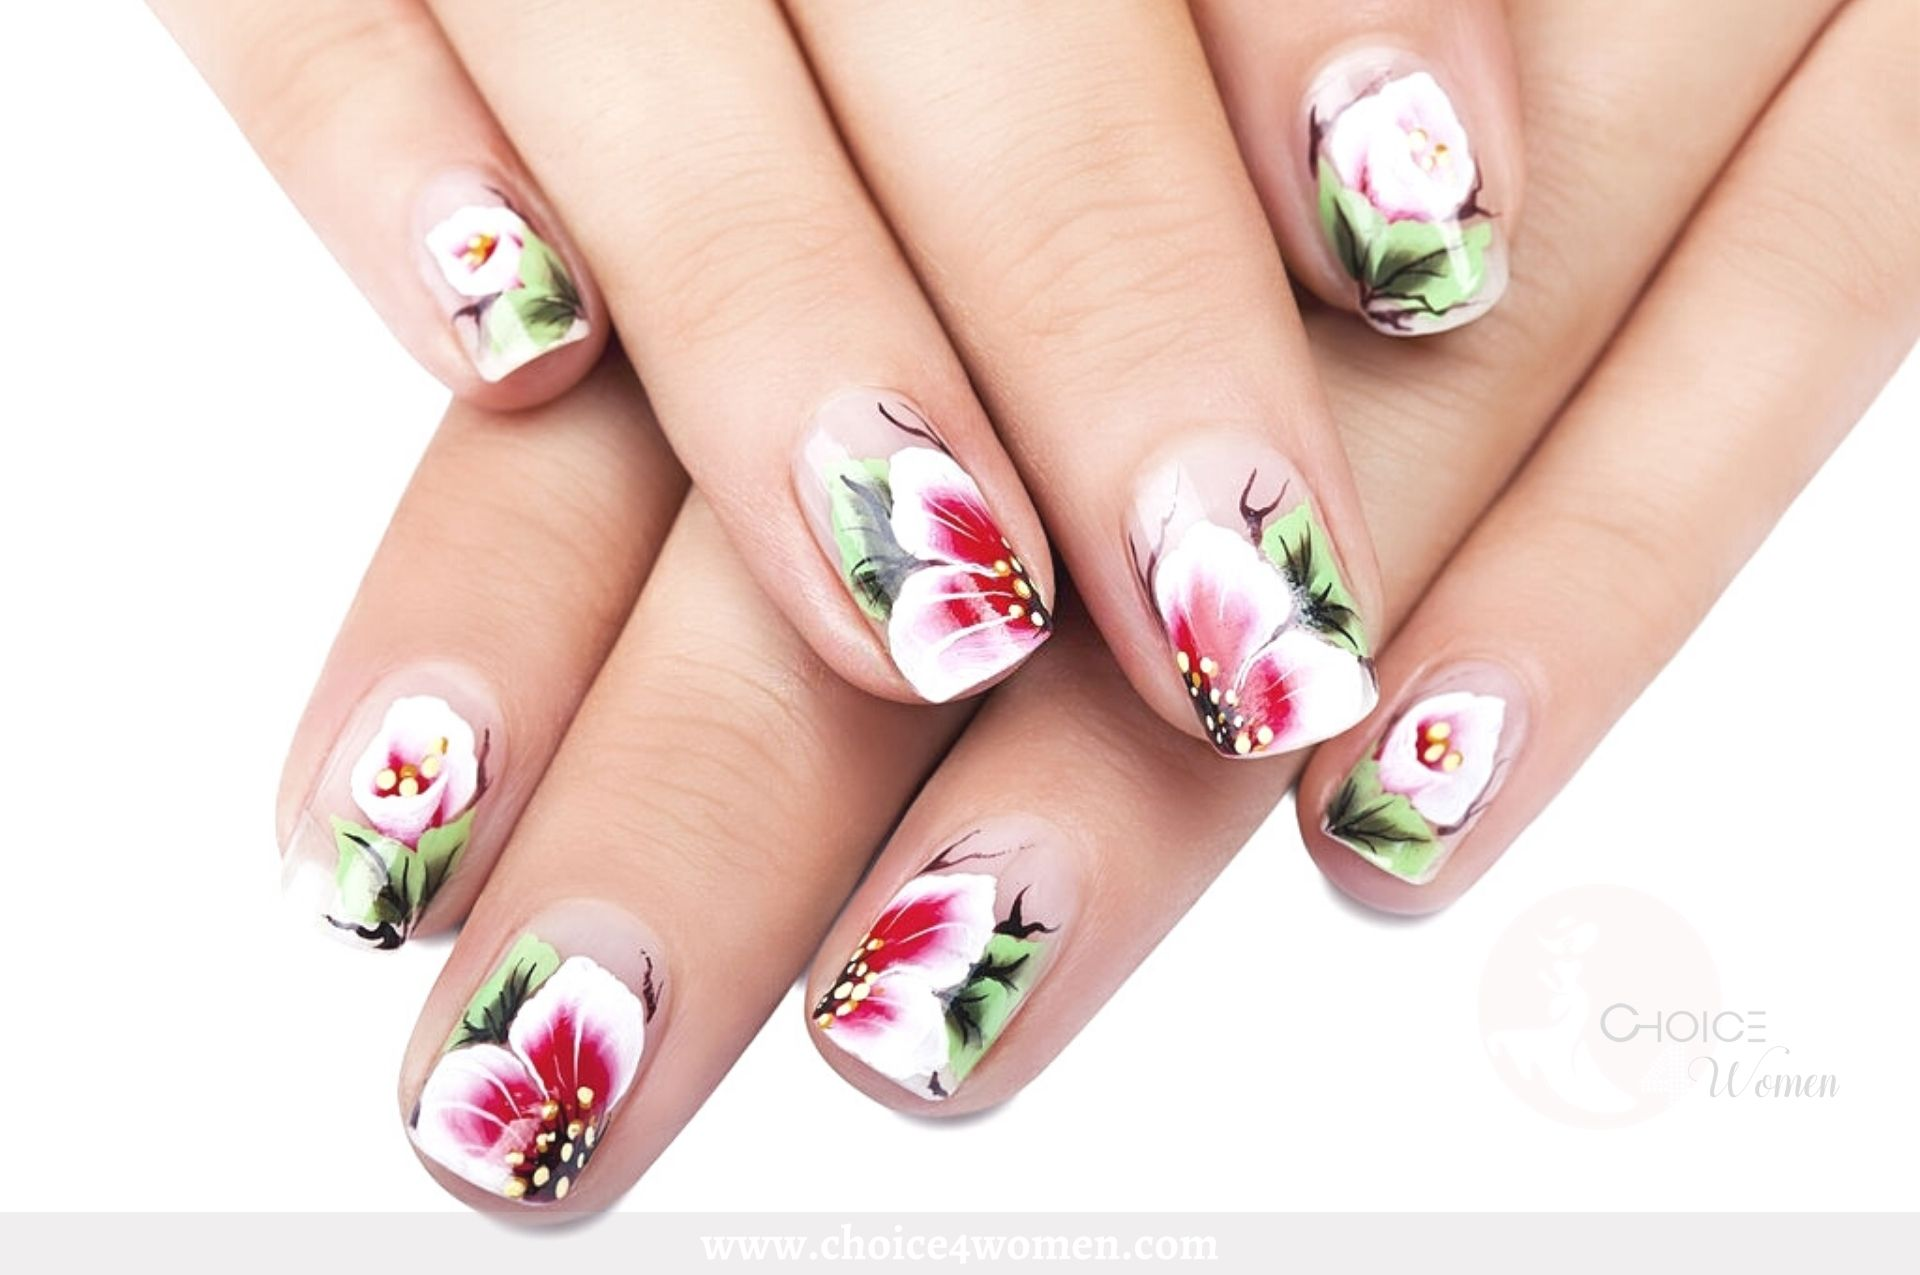 17 Inspiring Simple Nail Art Designs to Make your Hands Stylish